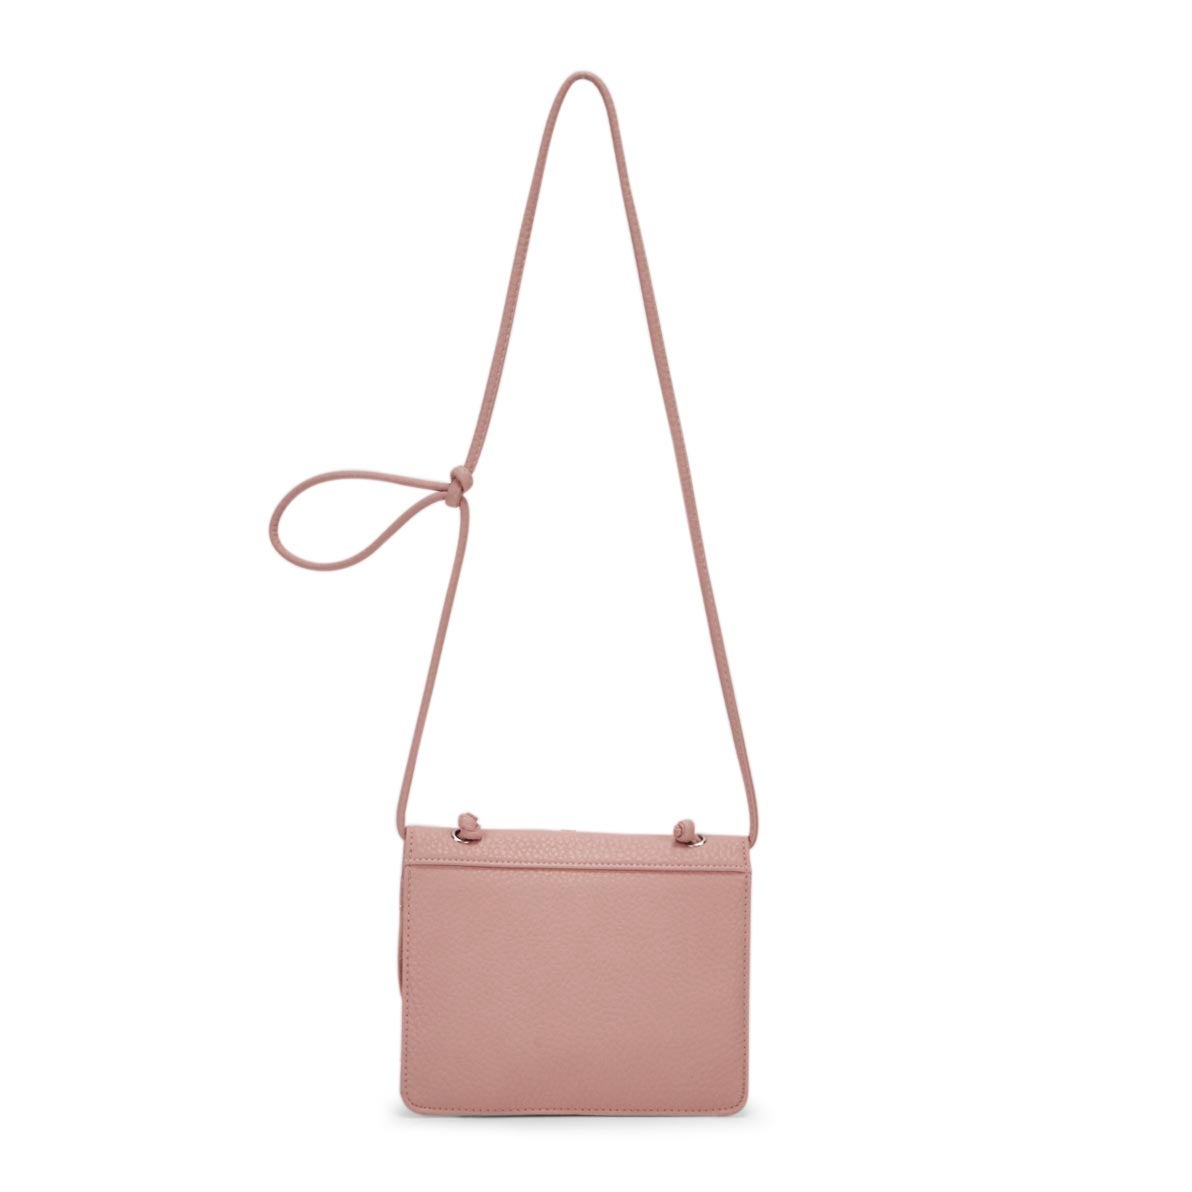 Lds Sydney Organizer pink crossbody bag